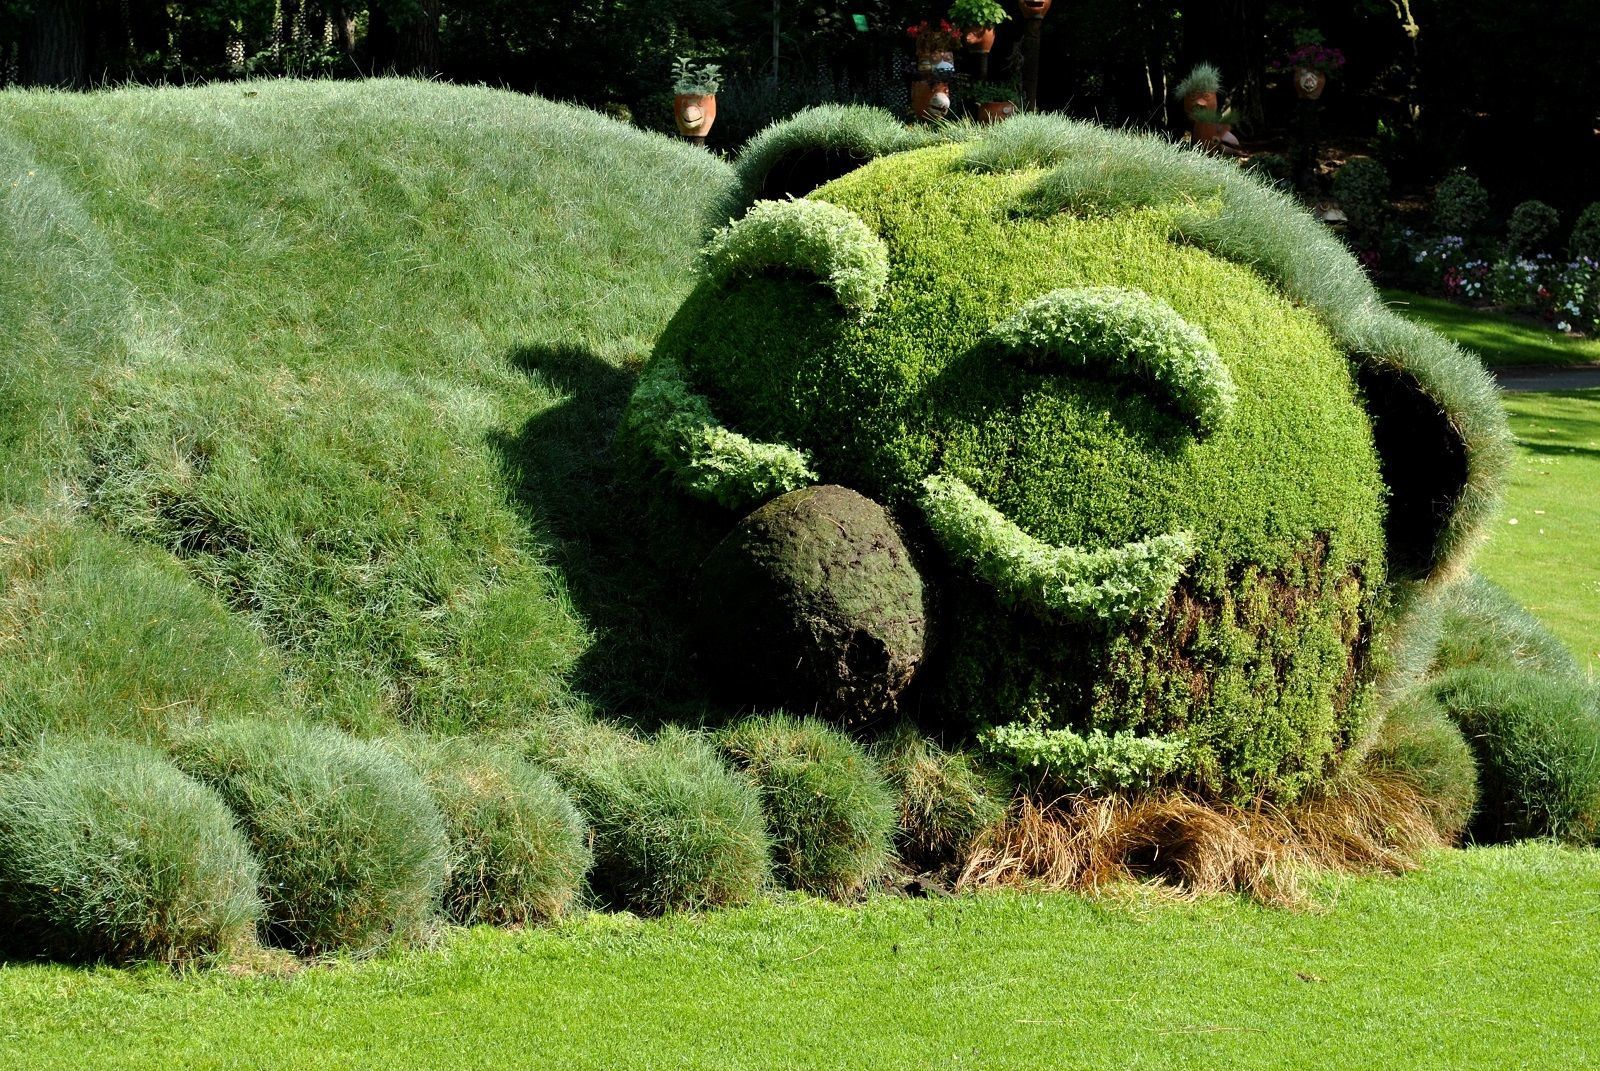 Article du jour: Jardin des plantes de Nantes. - PAROLES D ESCARGOT